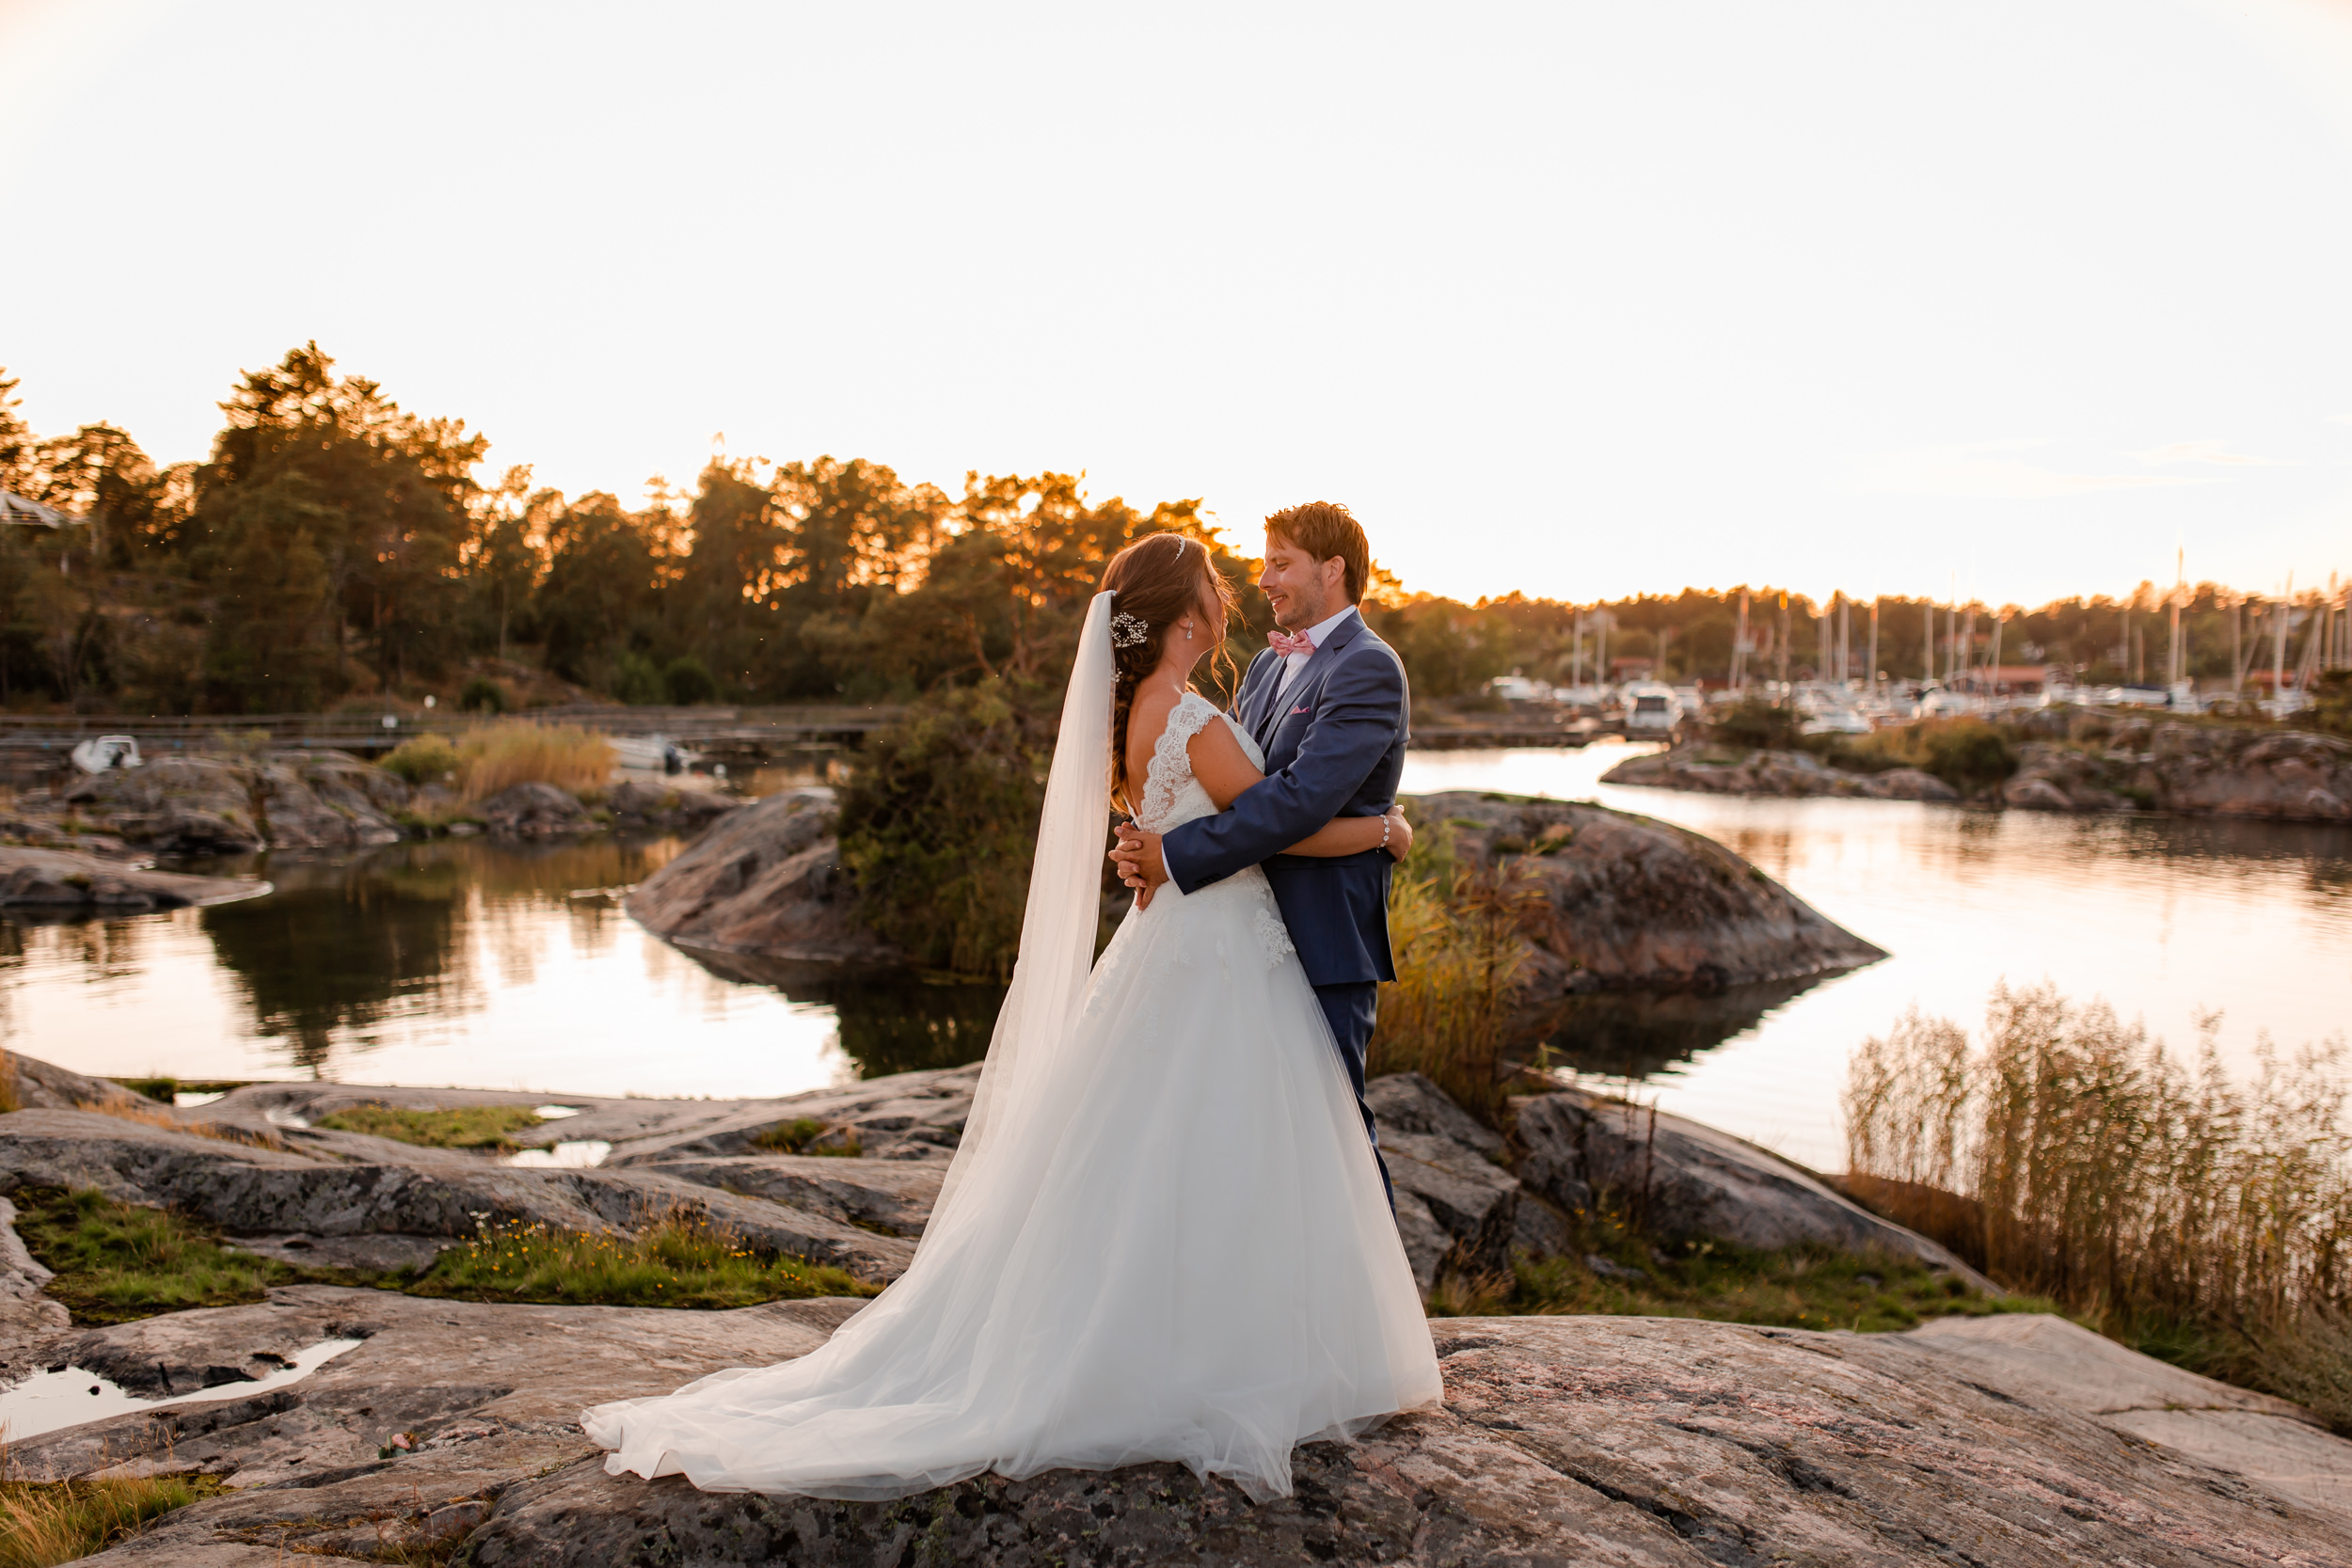 Wedding photography in golden hour